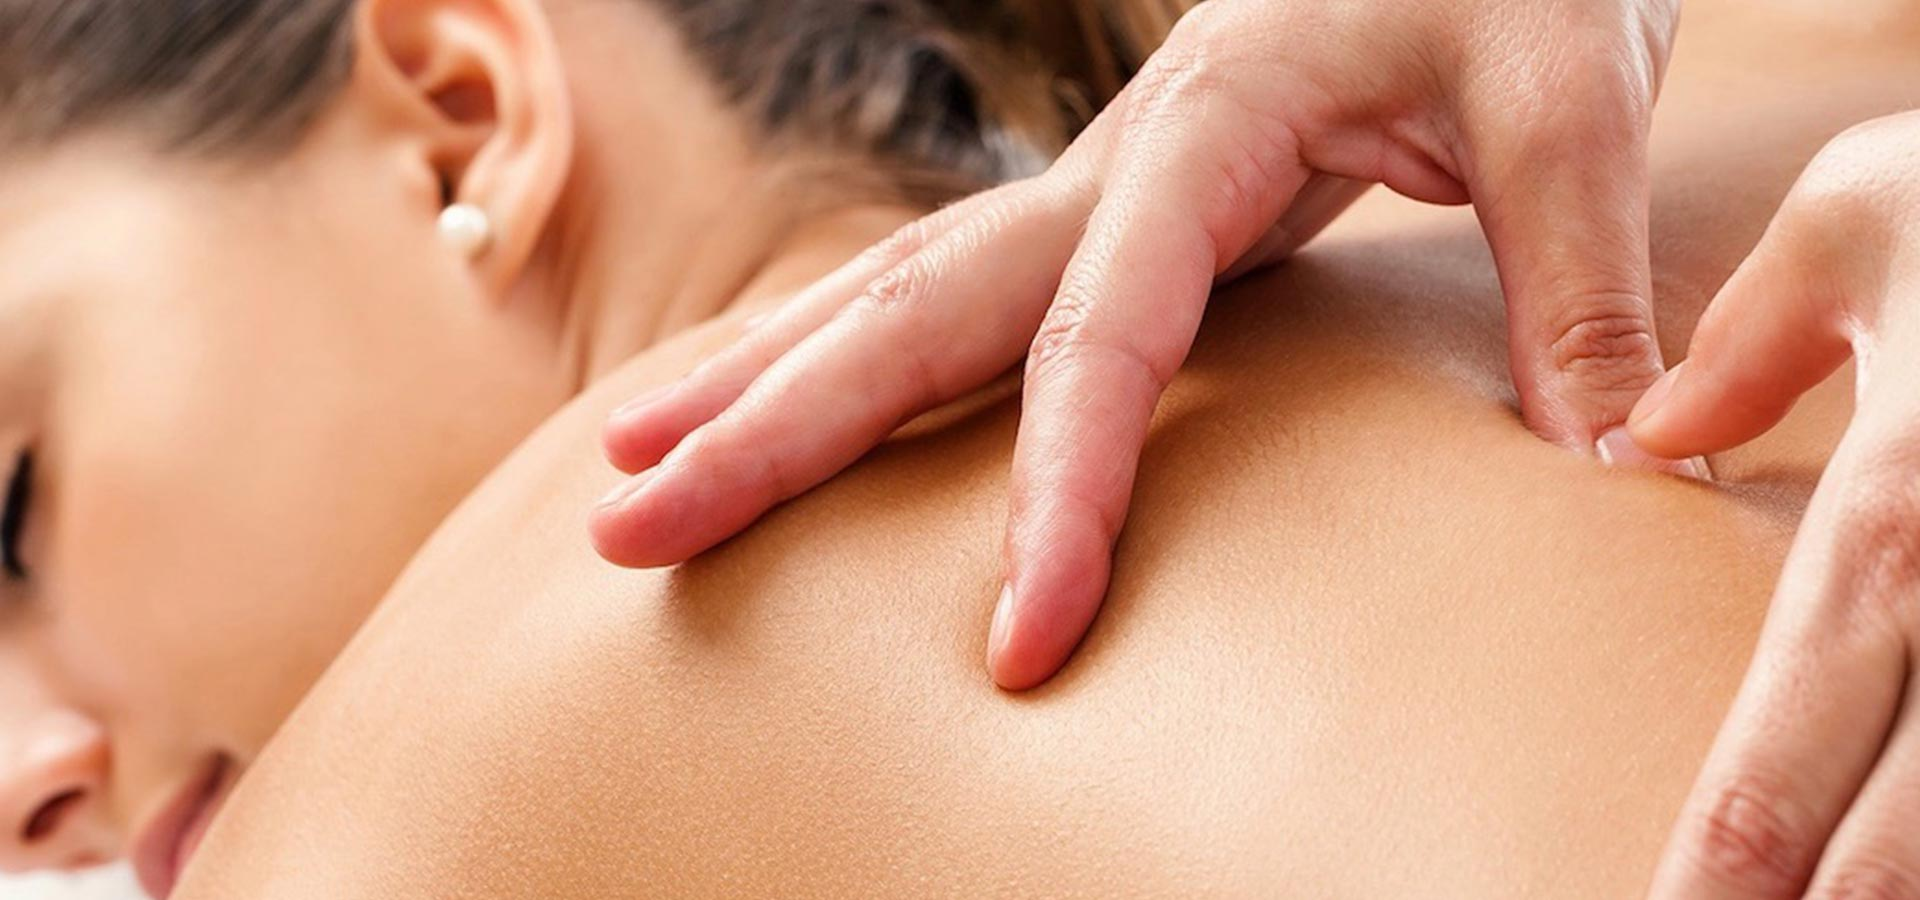 Morzine Massage and Pampering